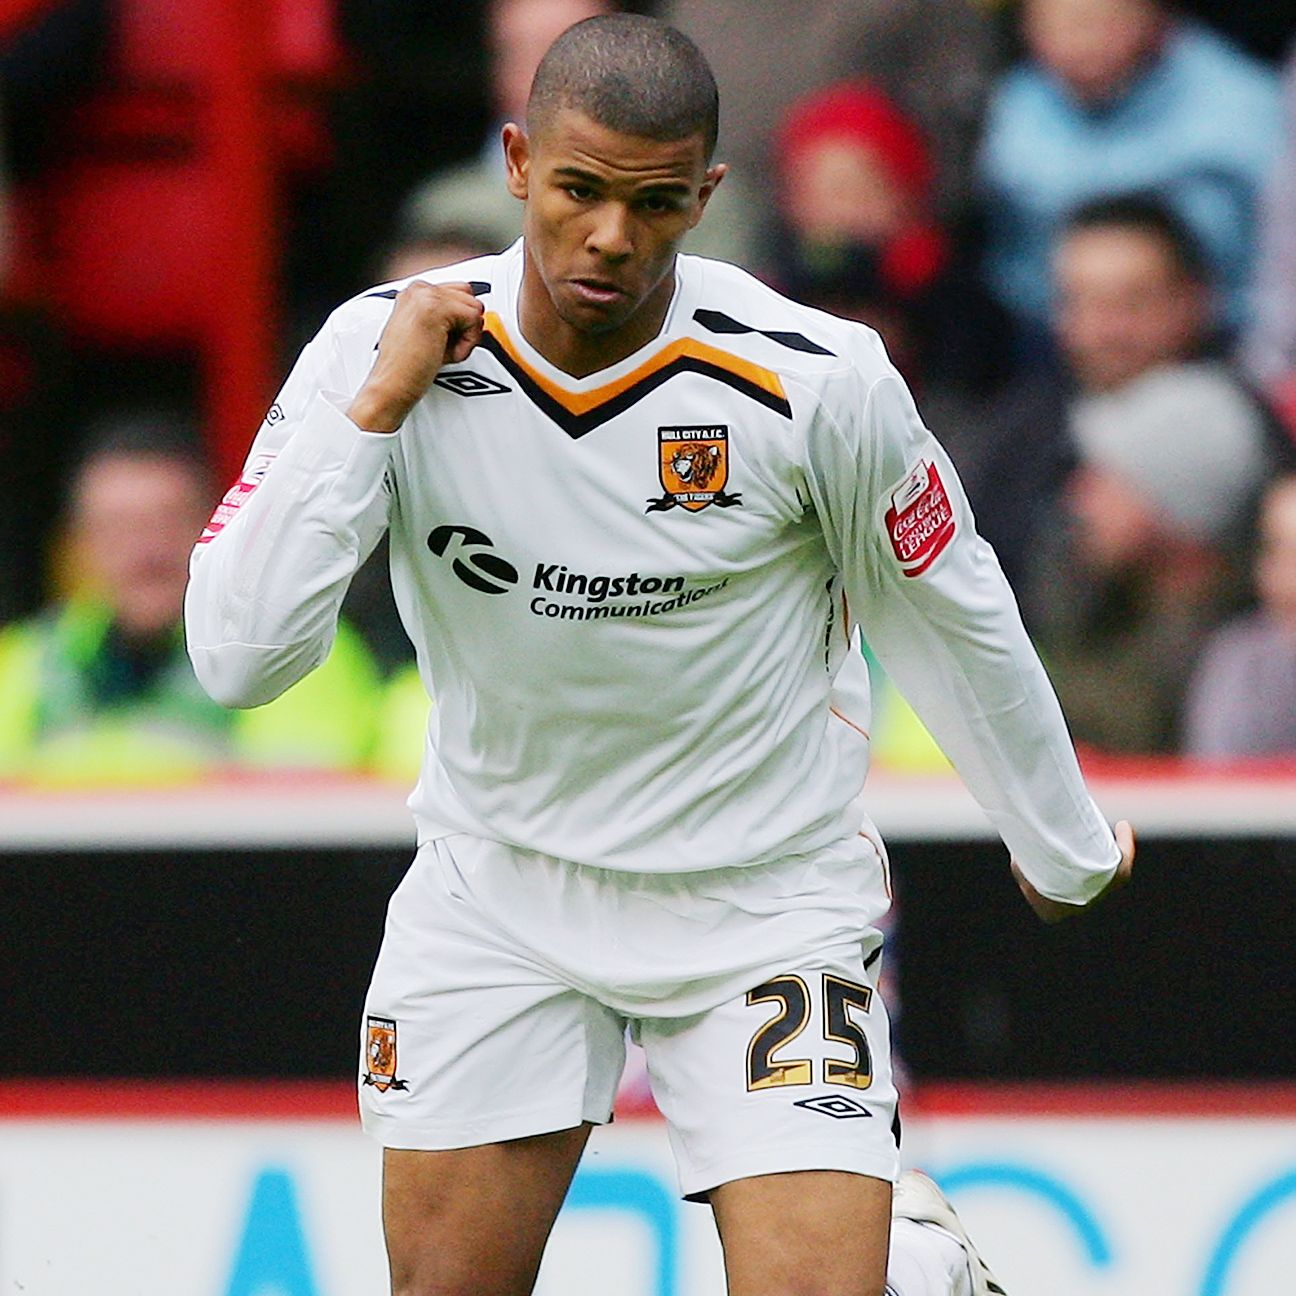 Despite helping Hull City to promotion in 2008, Fraizer Campbell is regarded as persona non grata at the KC Stadium.